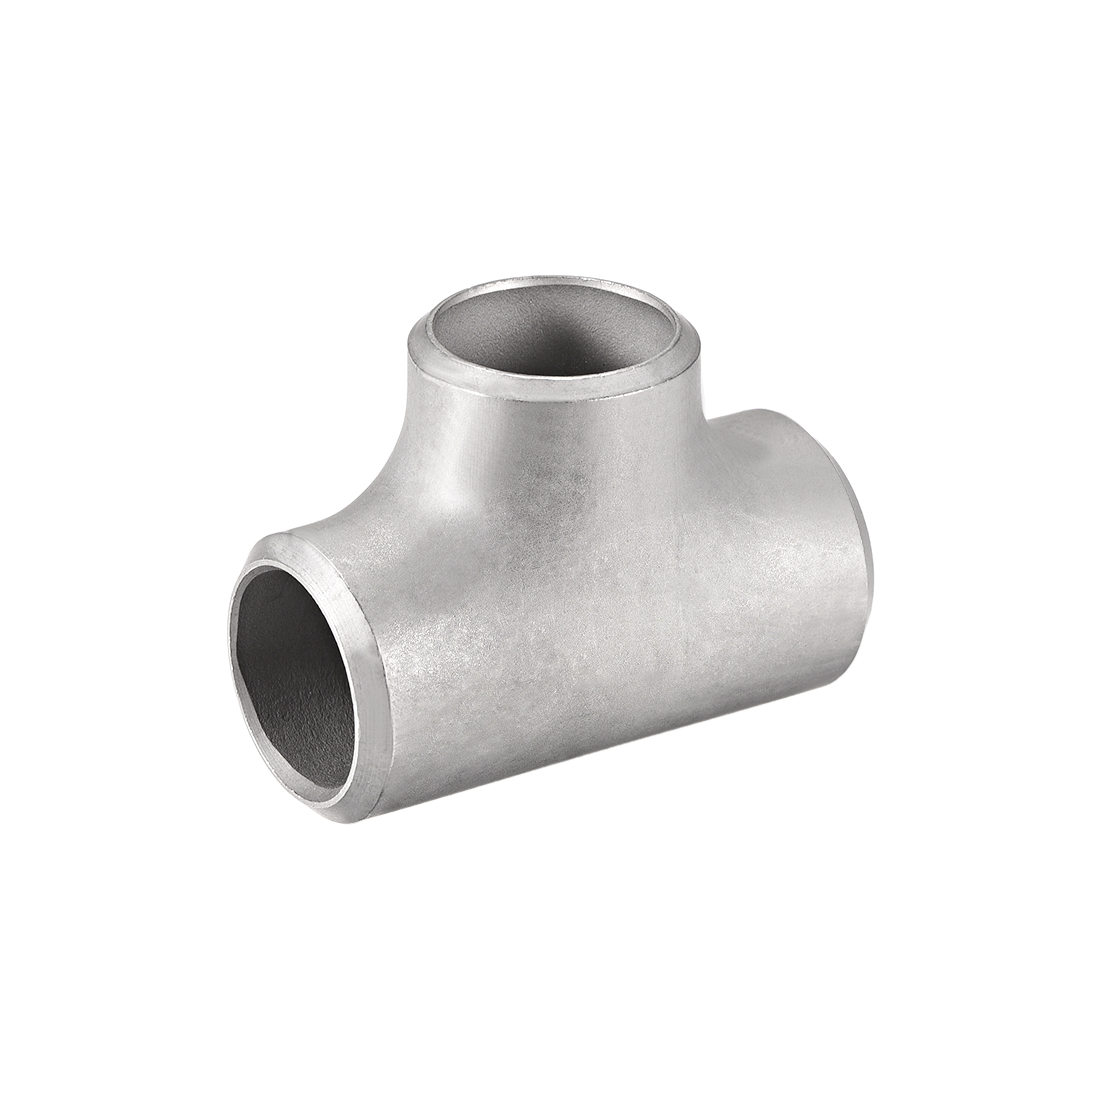 Stainless Steel 304 Pipe Fitting 21mmx22mmx21mm Tee Shaped Connector Coupler